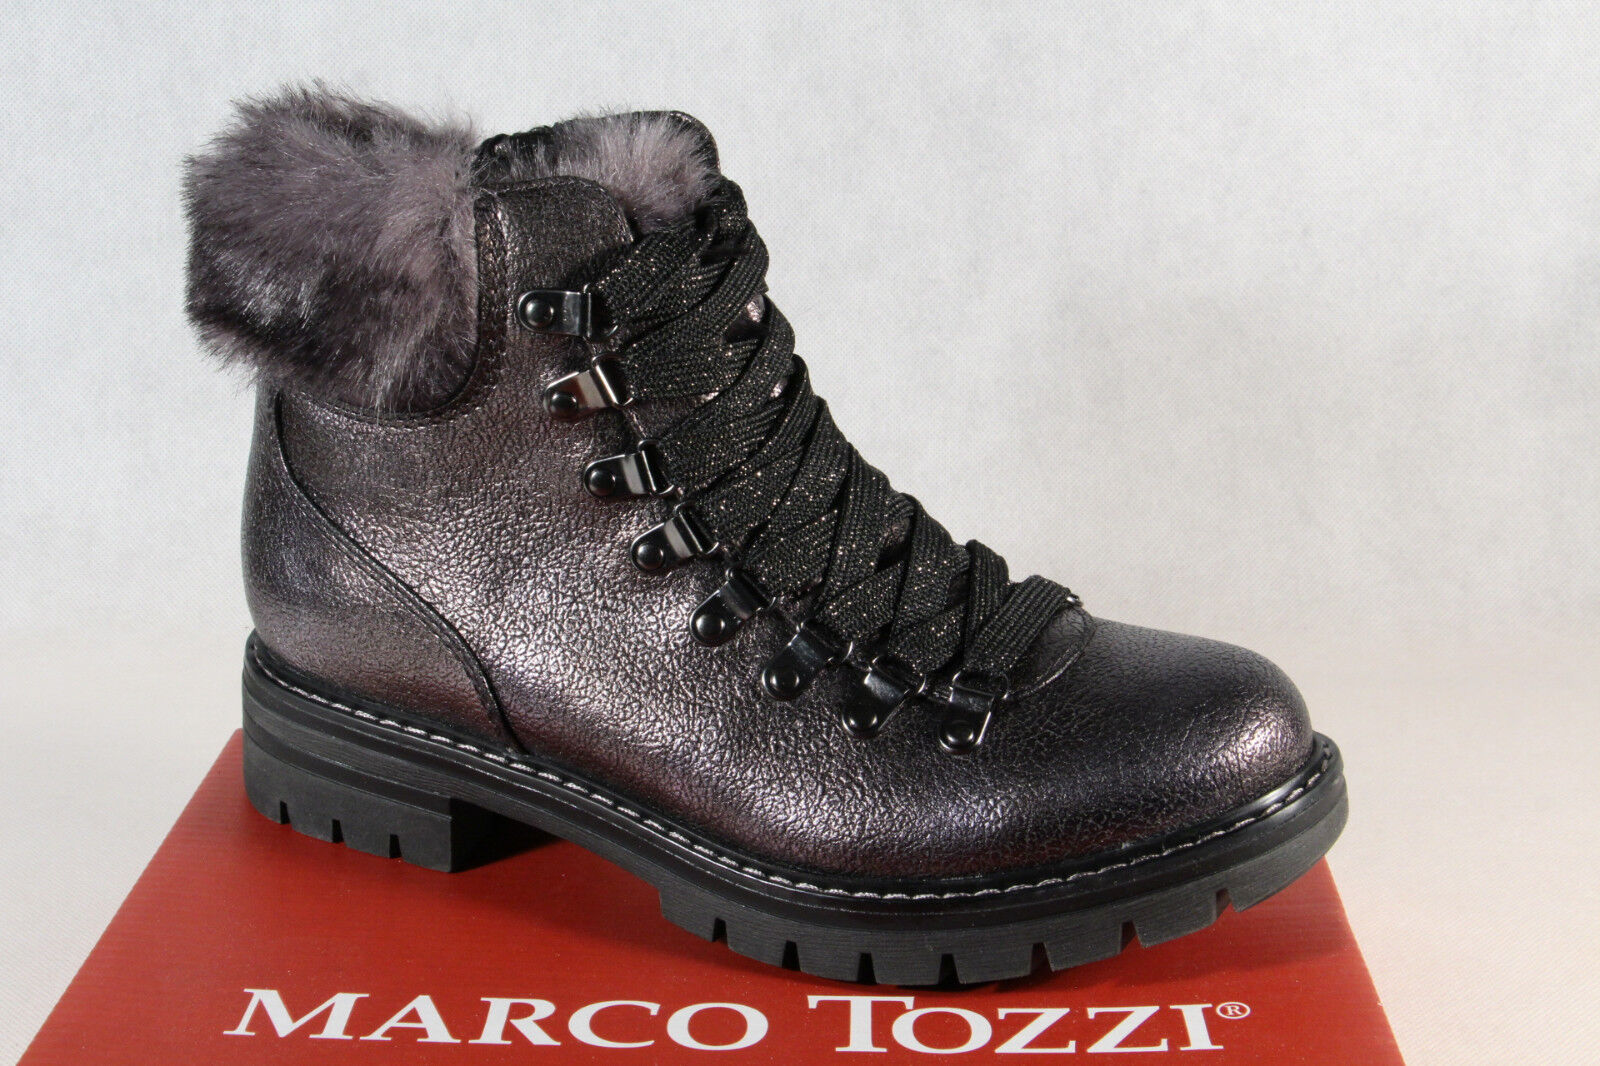 Marco Tozzi 26241 Women's Boots Ankle Boots Lace up Boots Grey New